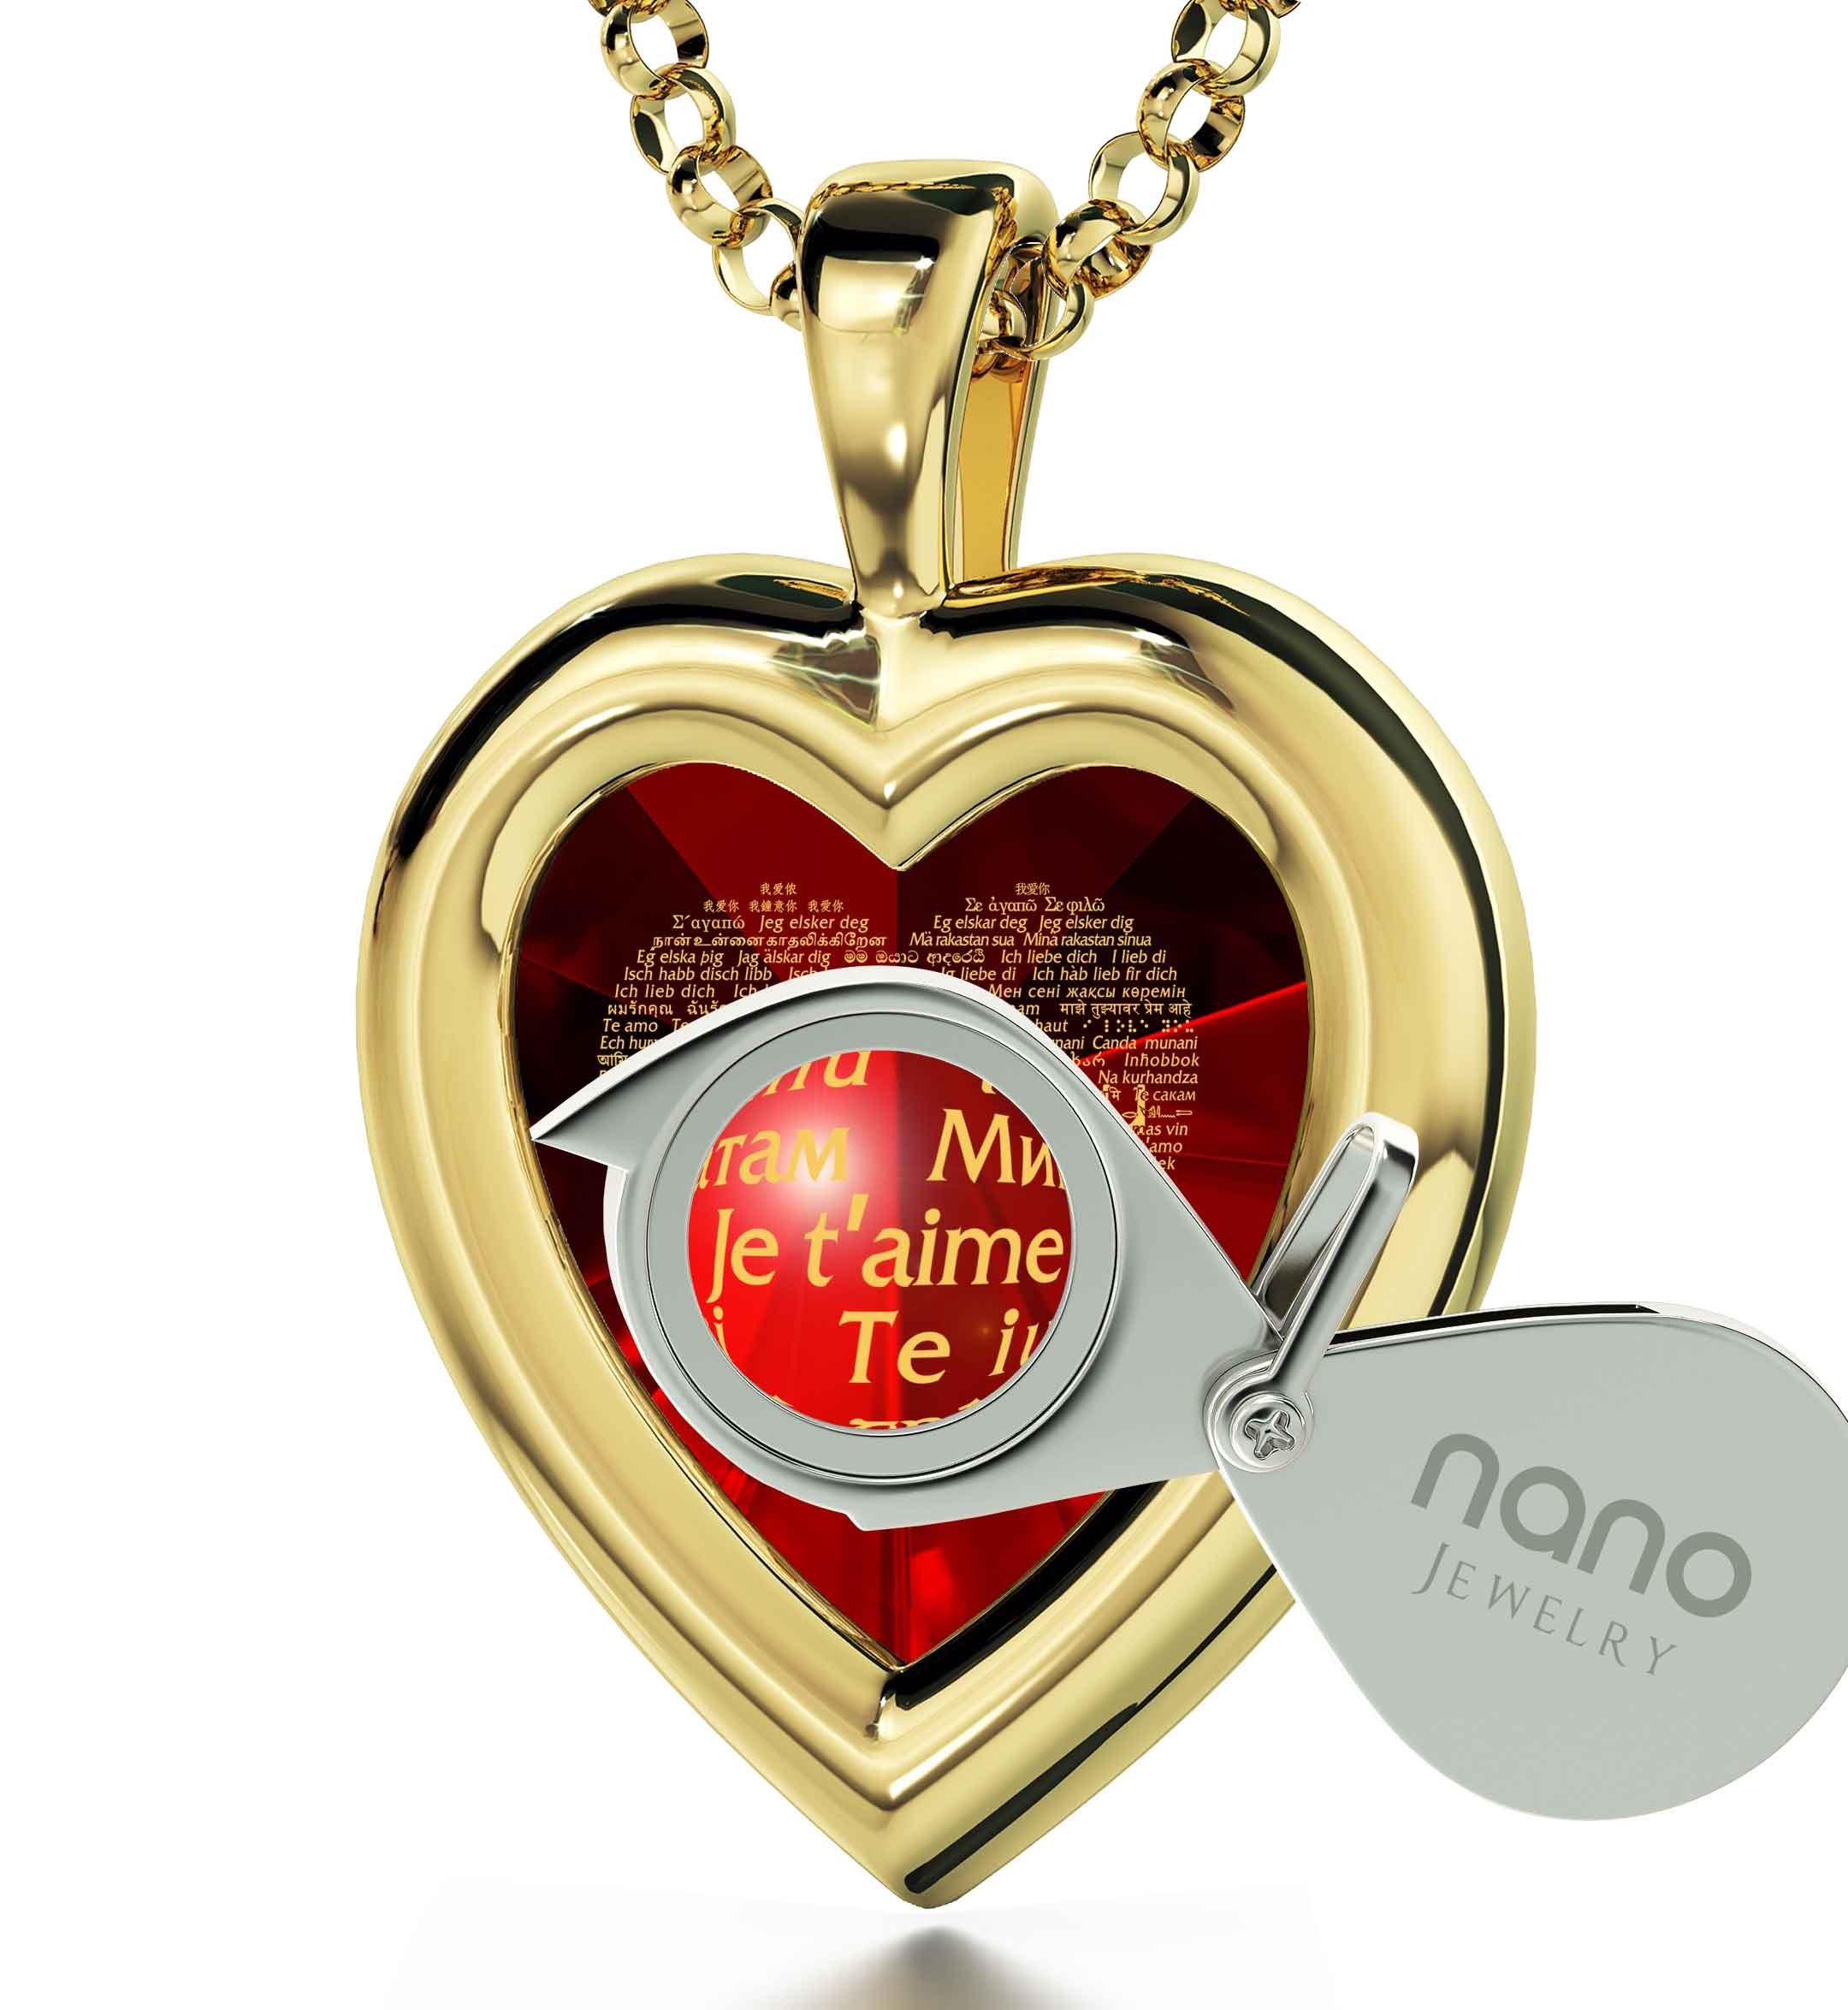 Yellow Gold Plated Heart Pendant I Love You Necklace 120 Languages 24k Inscribed Red Cubic Zirconia, 18'' by Nano Jewelry (Image #2)